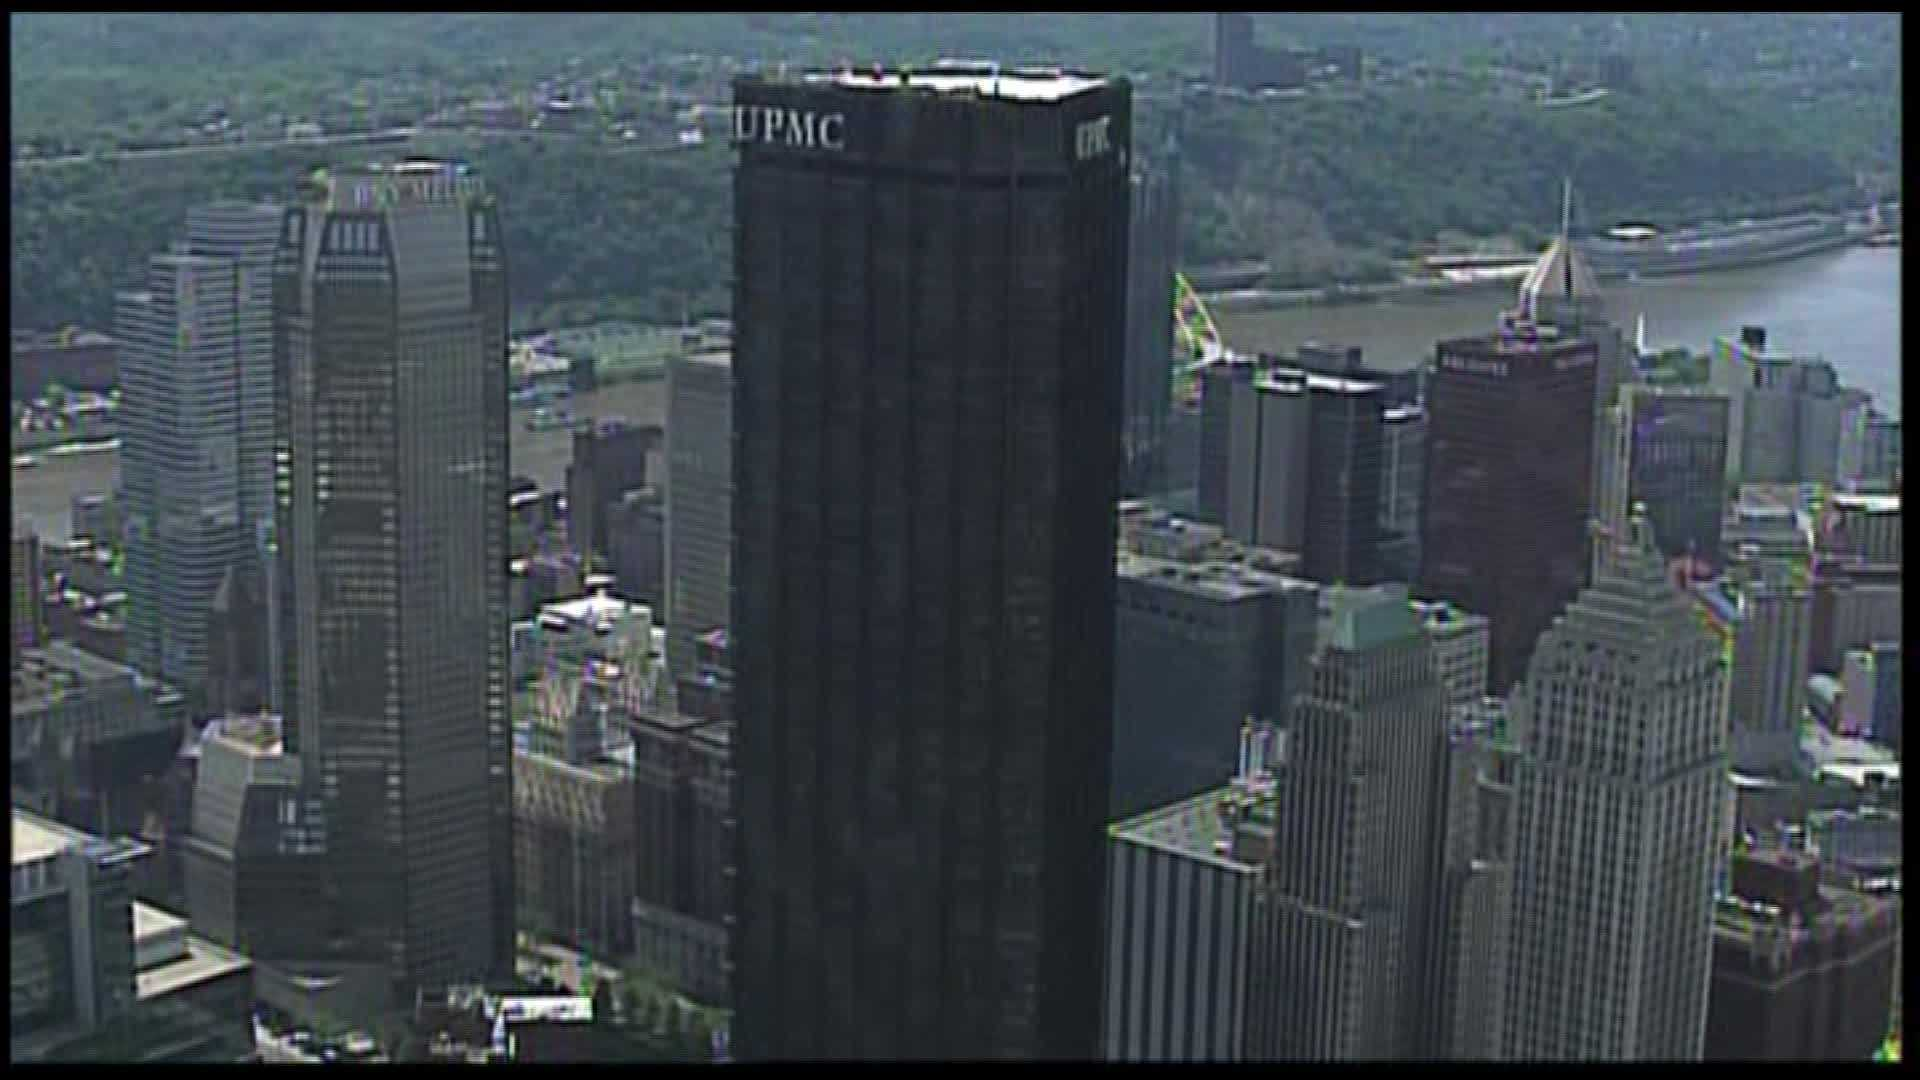 These days, the UPMC sign is prominently displayed atop the Steel Building. The University of Pittsburgh Medical Center is headquartered here, and it leases several floors, including the 62nd floor that used to be the Top of the Triangle restaurant.